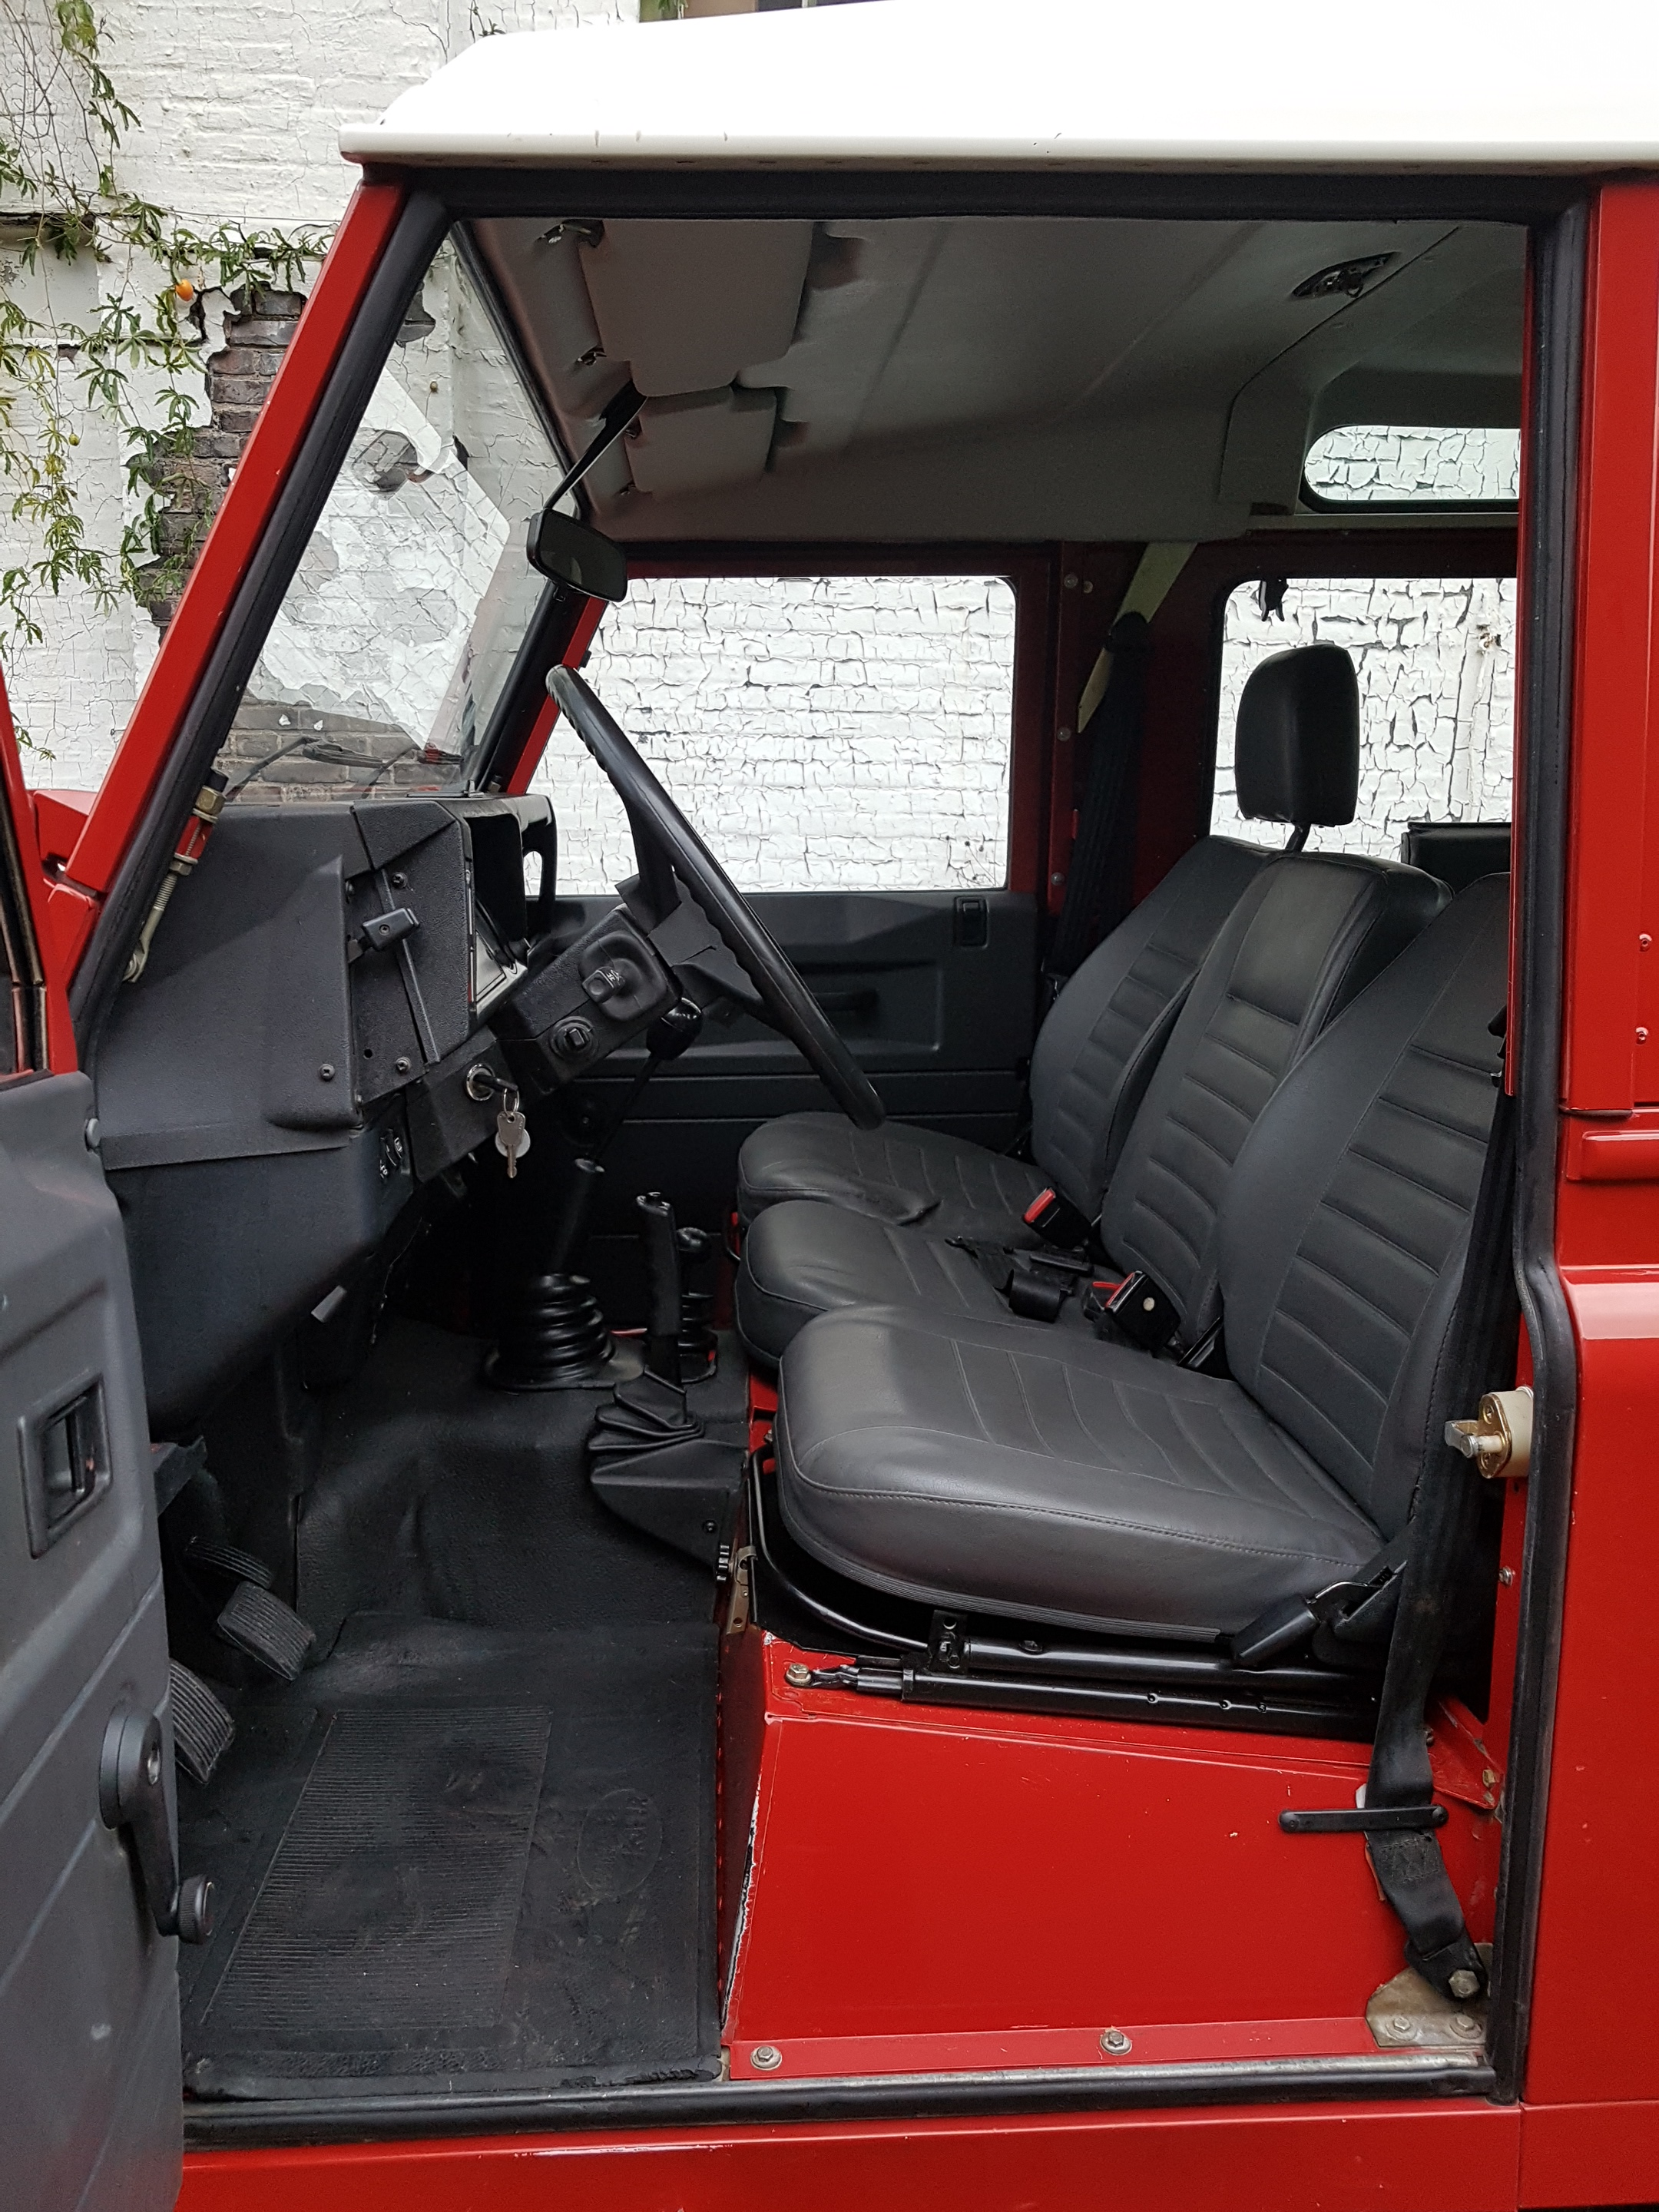 100 new land rover defender interior 2000 land for Interior land rover defender